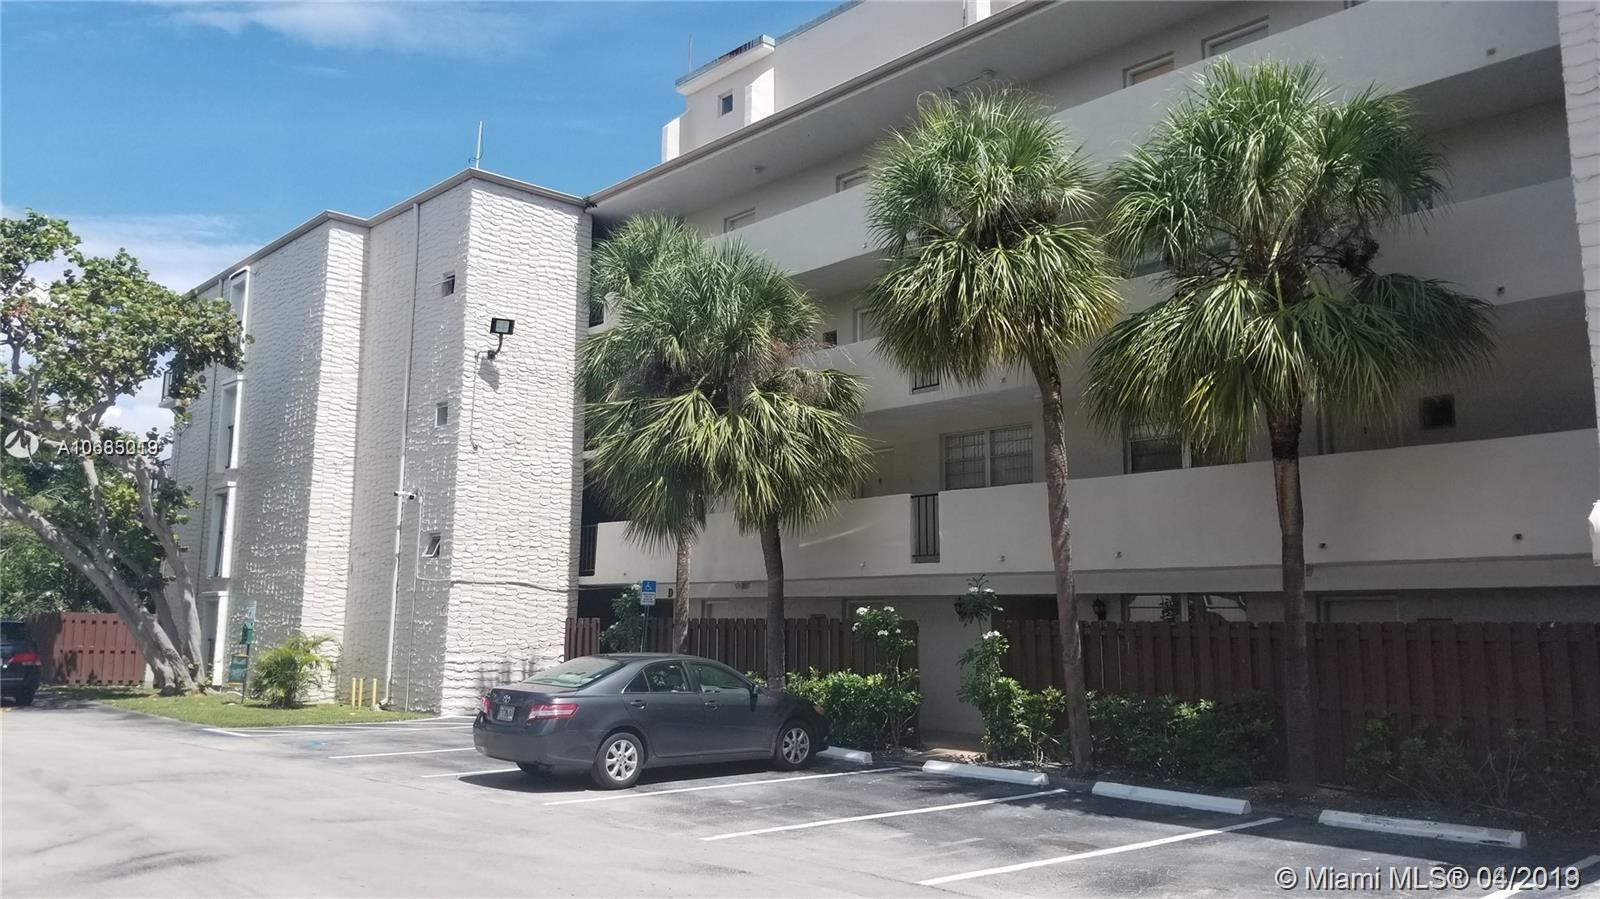 6886 N Kendall Dr #D108 For Sale A10665019, FL